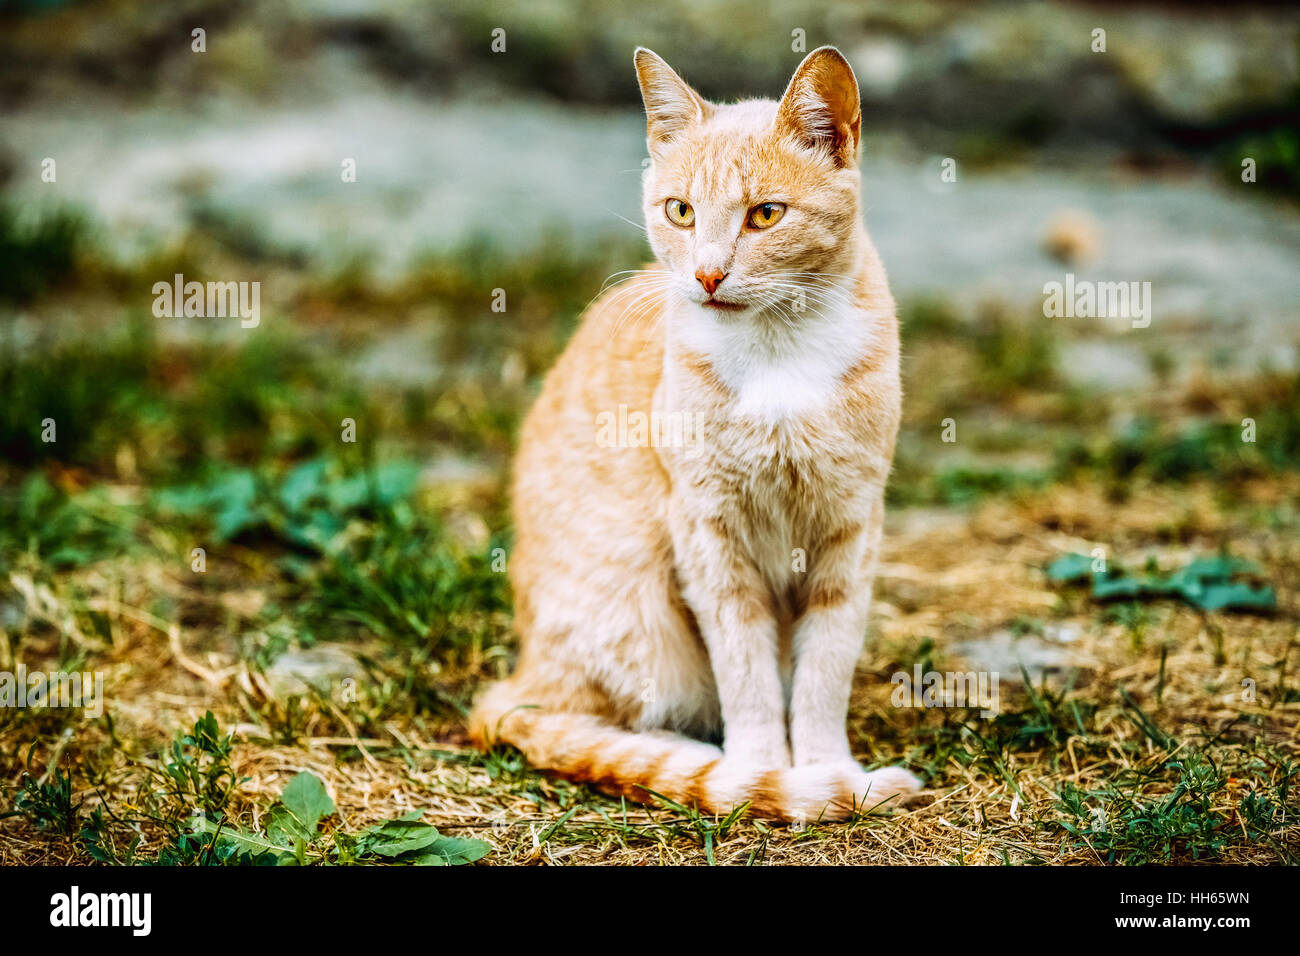 Beige Peachy Mixed Breed Domestic Adult Cat, Lazy Looking Aside, Tucked Paws On The Yellowed Grass. Copyspace. - Stock Image